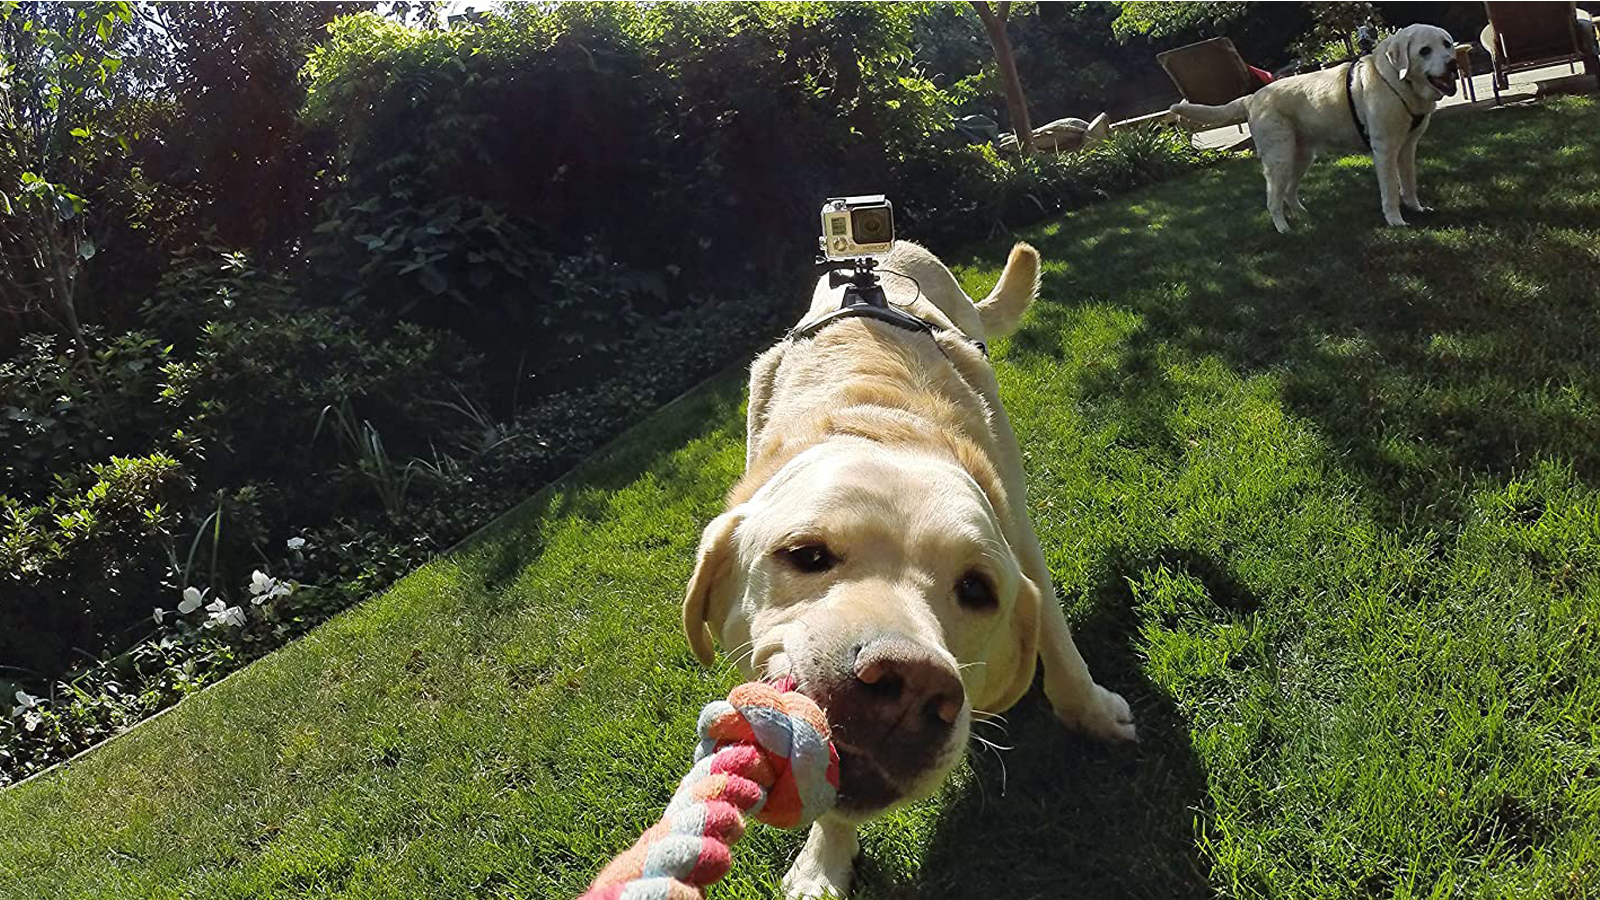 GoPro Fetch Harness on dog running around playing with toys in yard